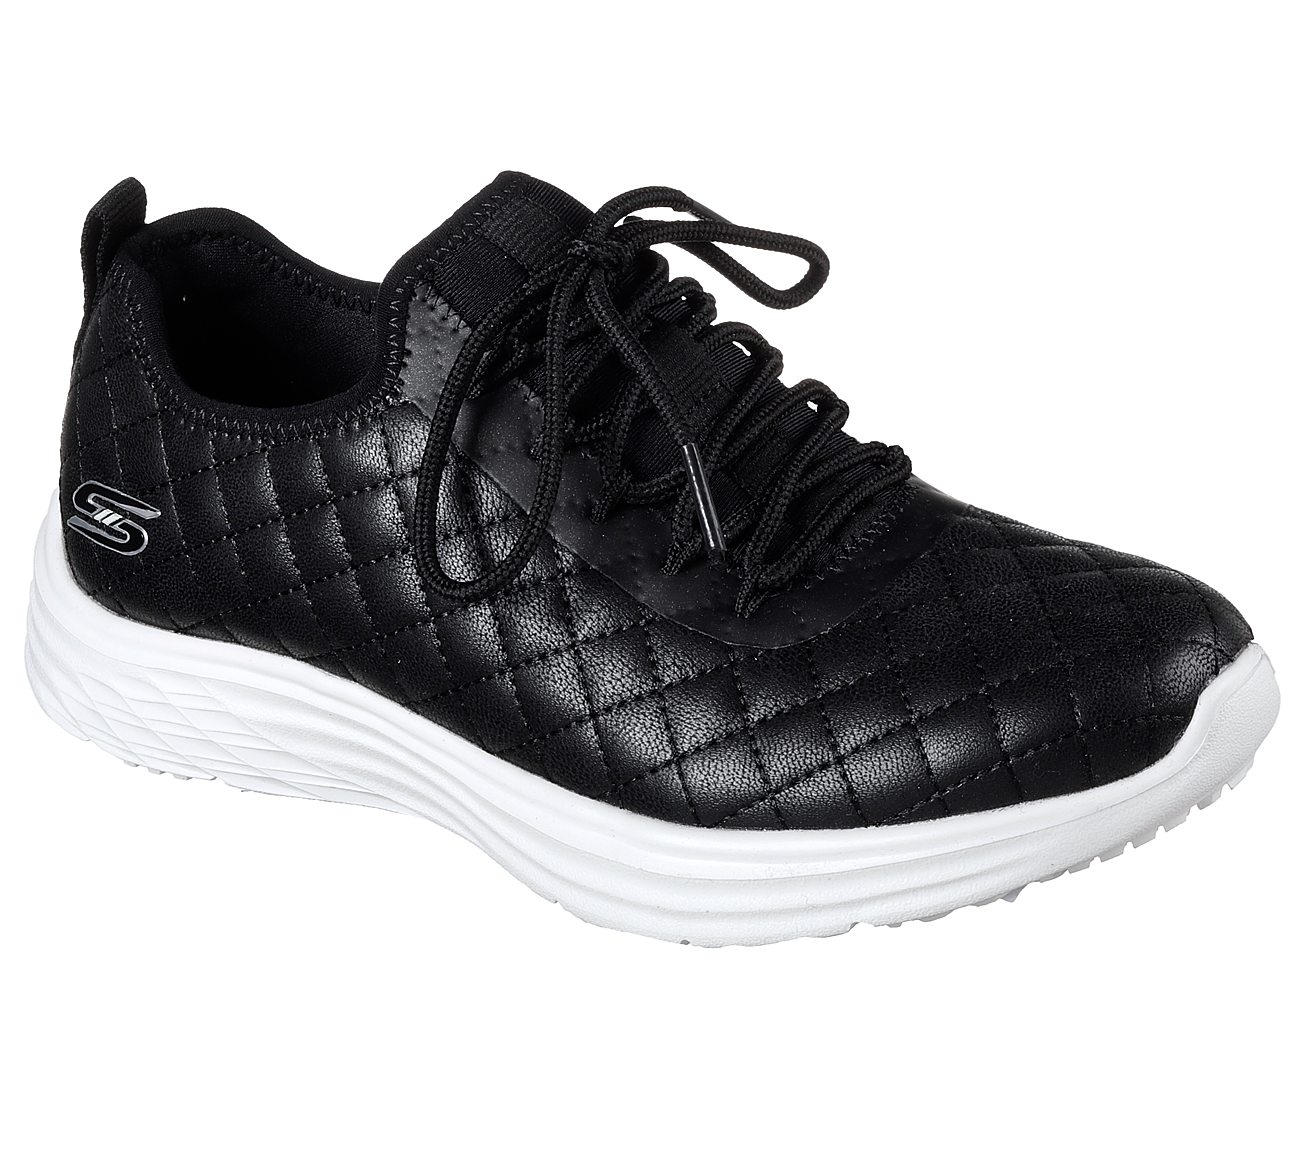 Schuhe Skechers - Bobs Sport Strobe Light 31355/blk Black